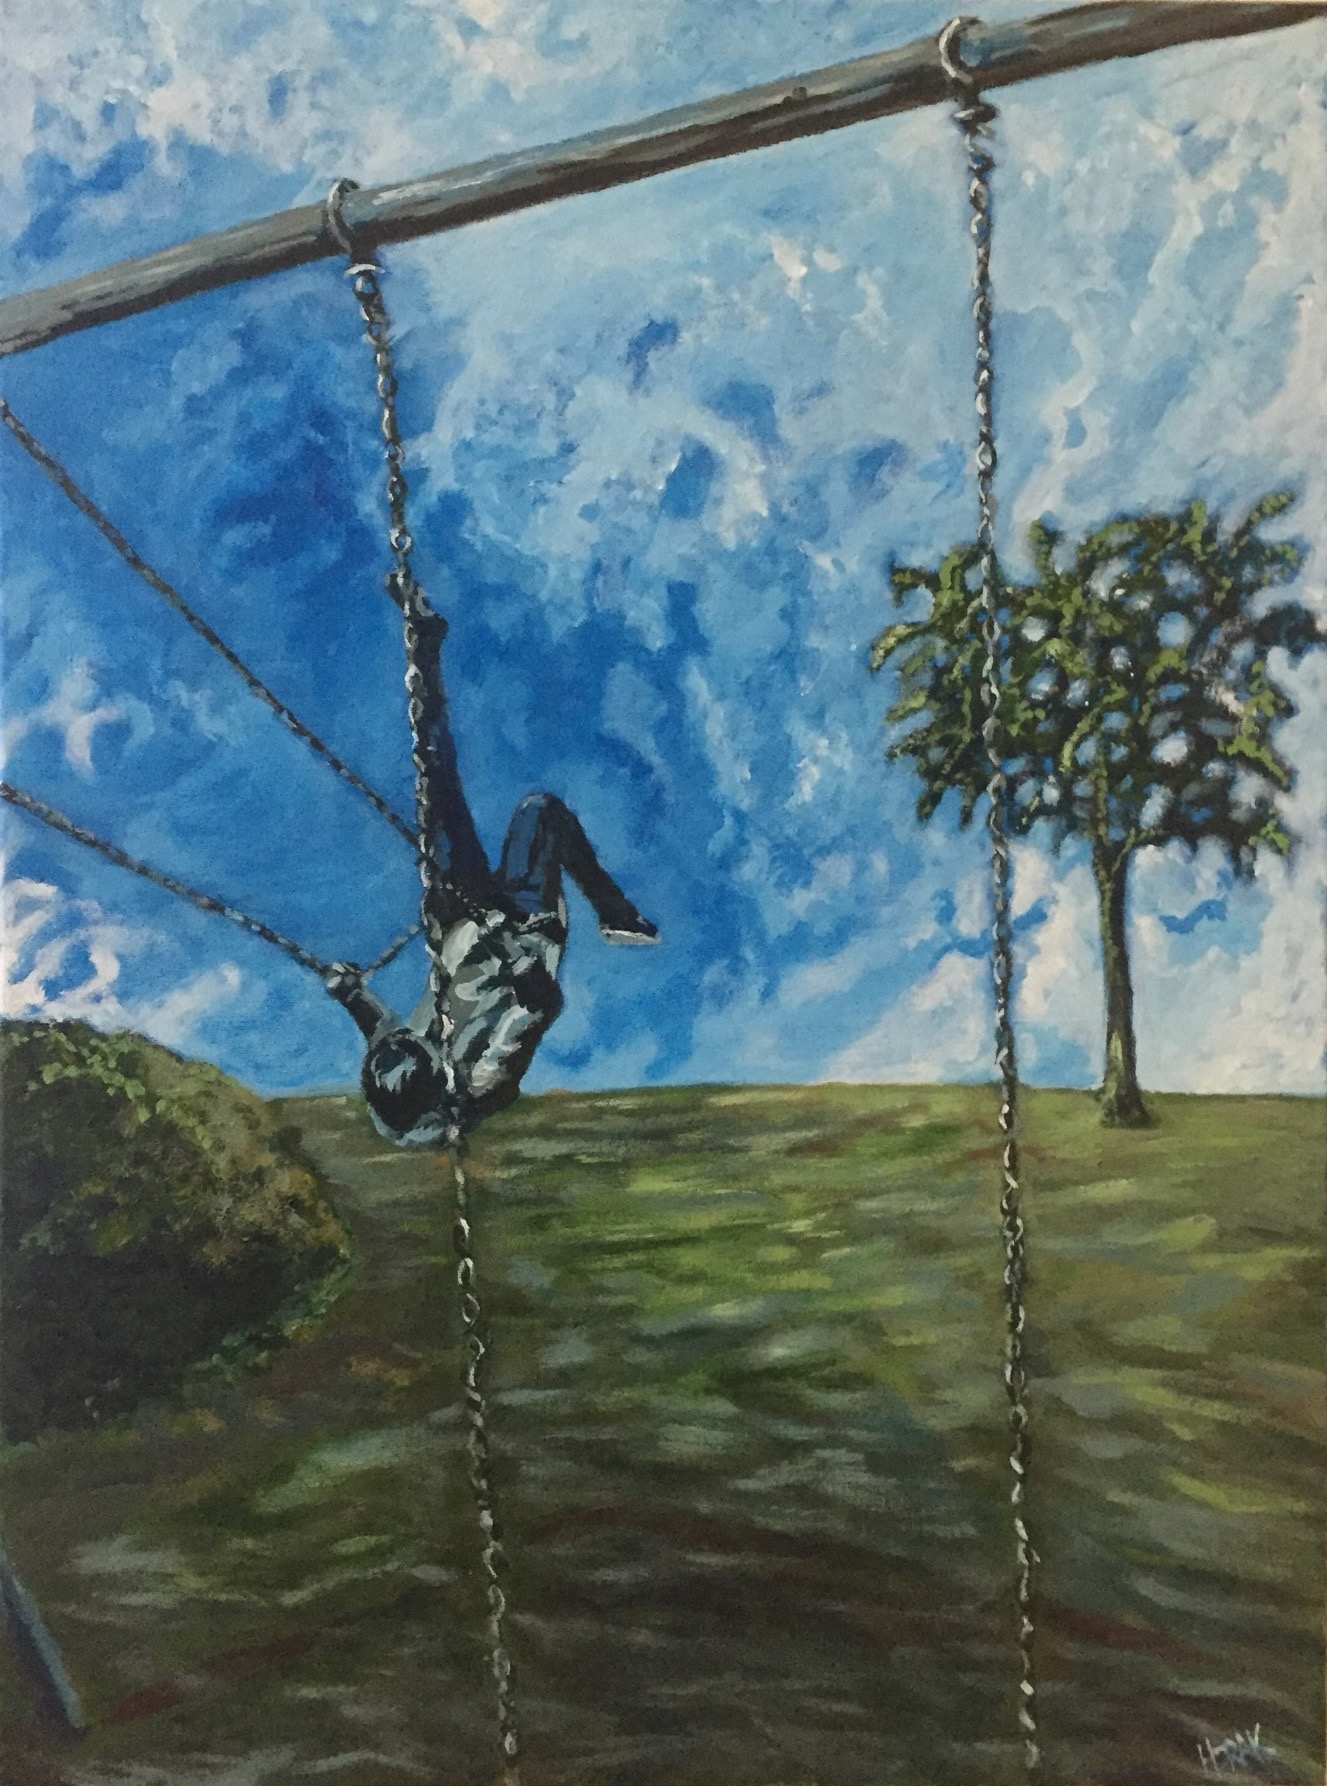 She Swings and the Clouds Part